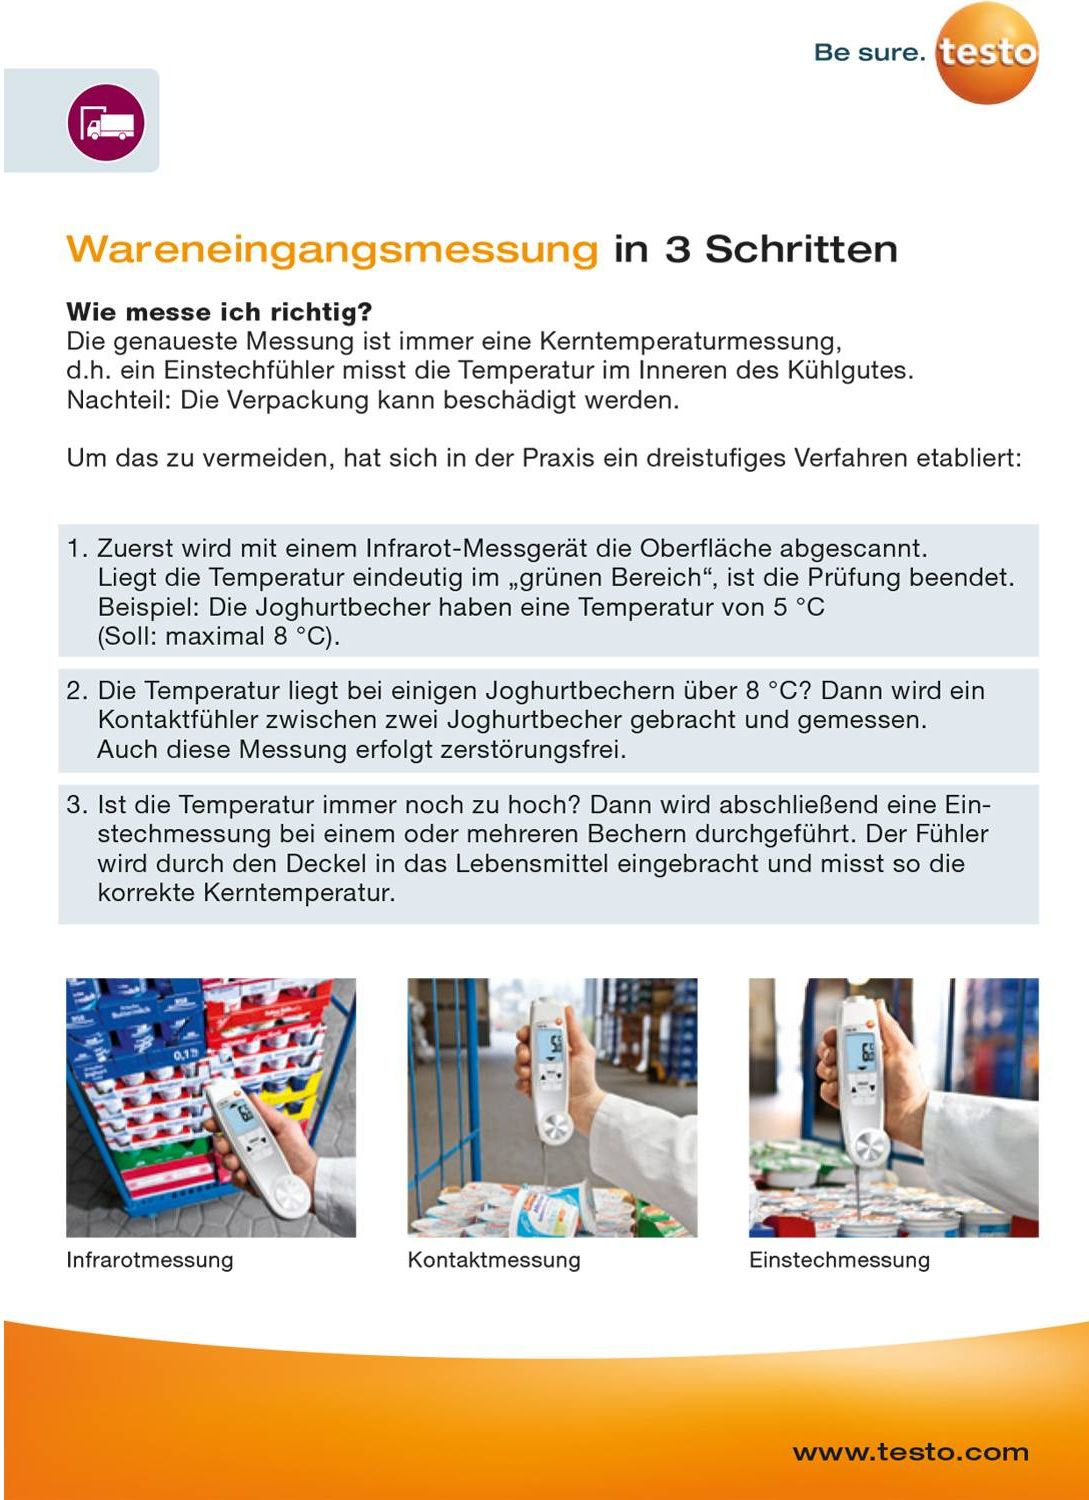 Trainingskarte - Wareneingangsmessung